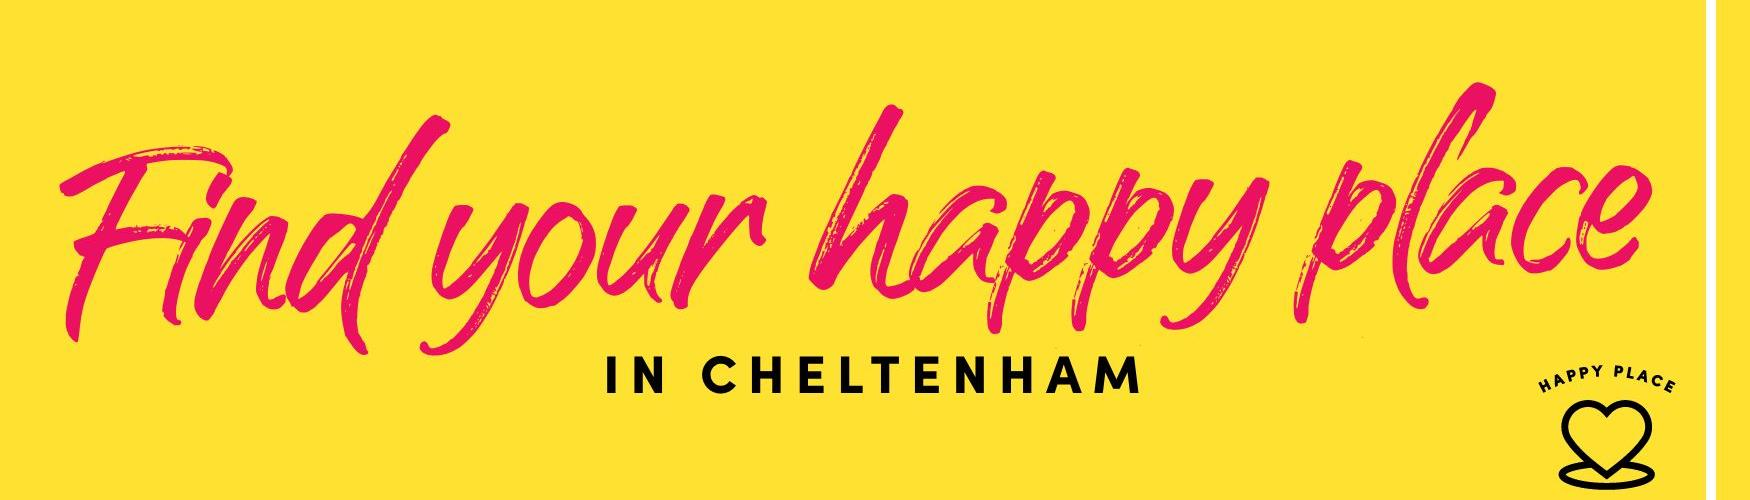 Find your Happy Place in Cheltenham